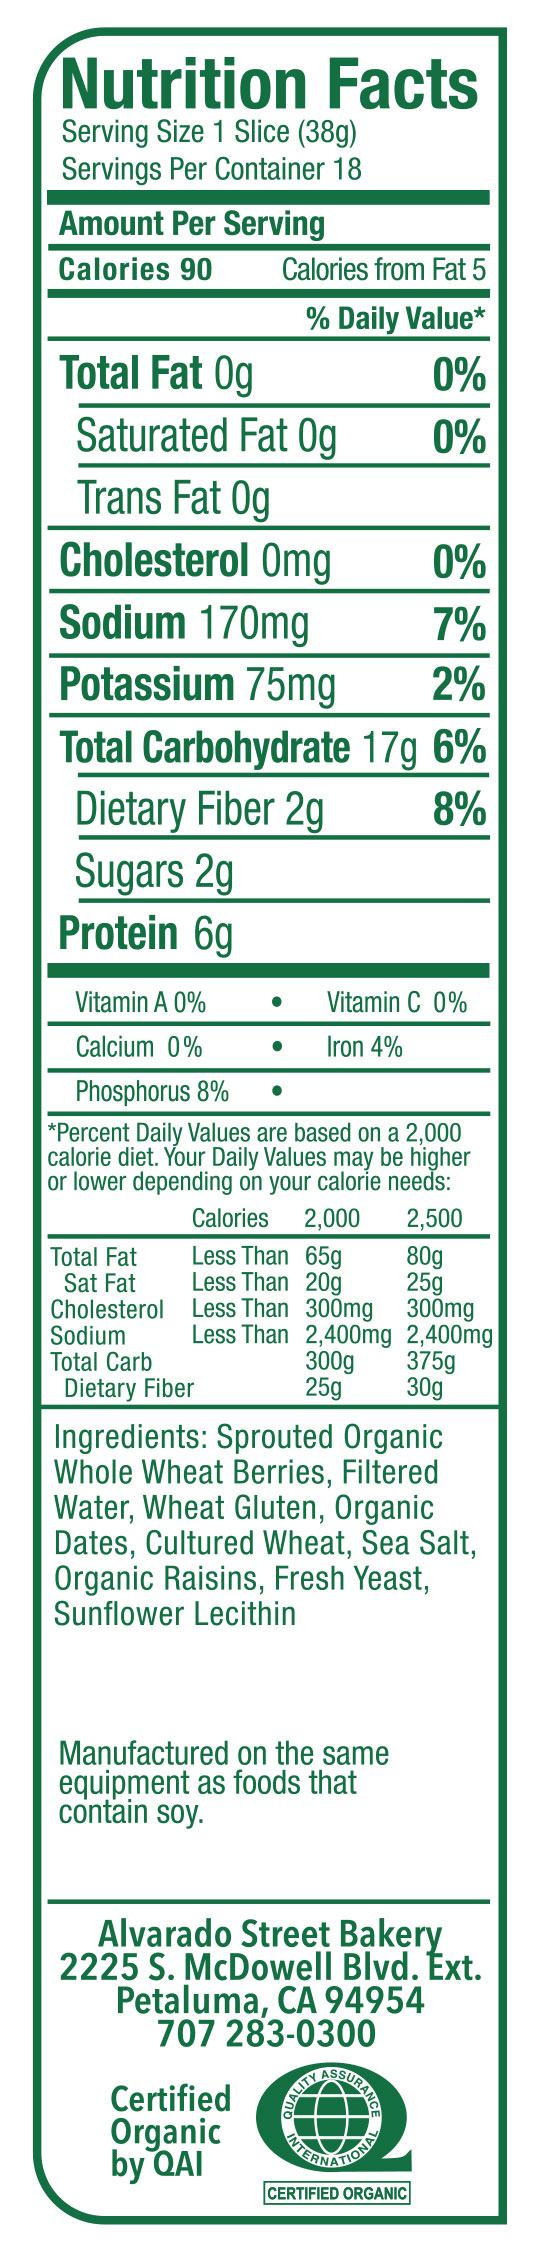 recipe: wheat berry nutritional information [19]